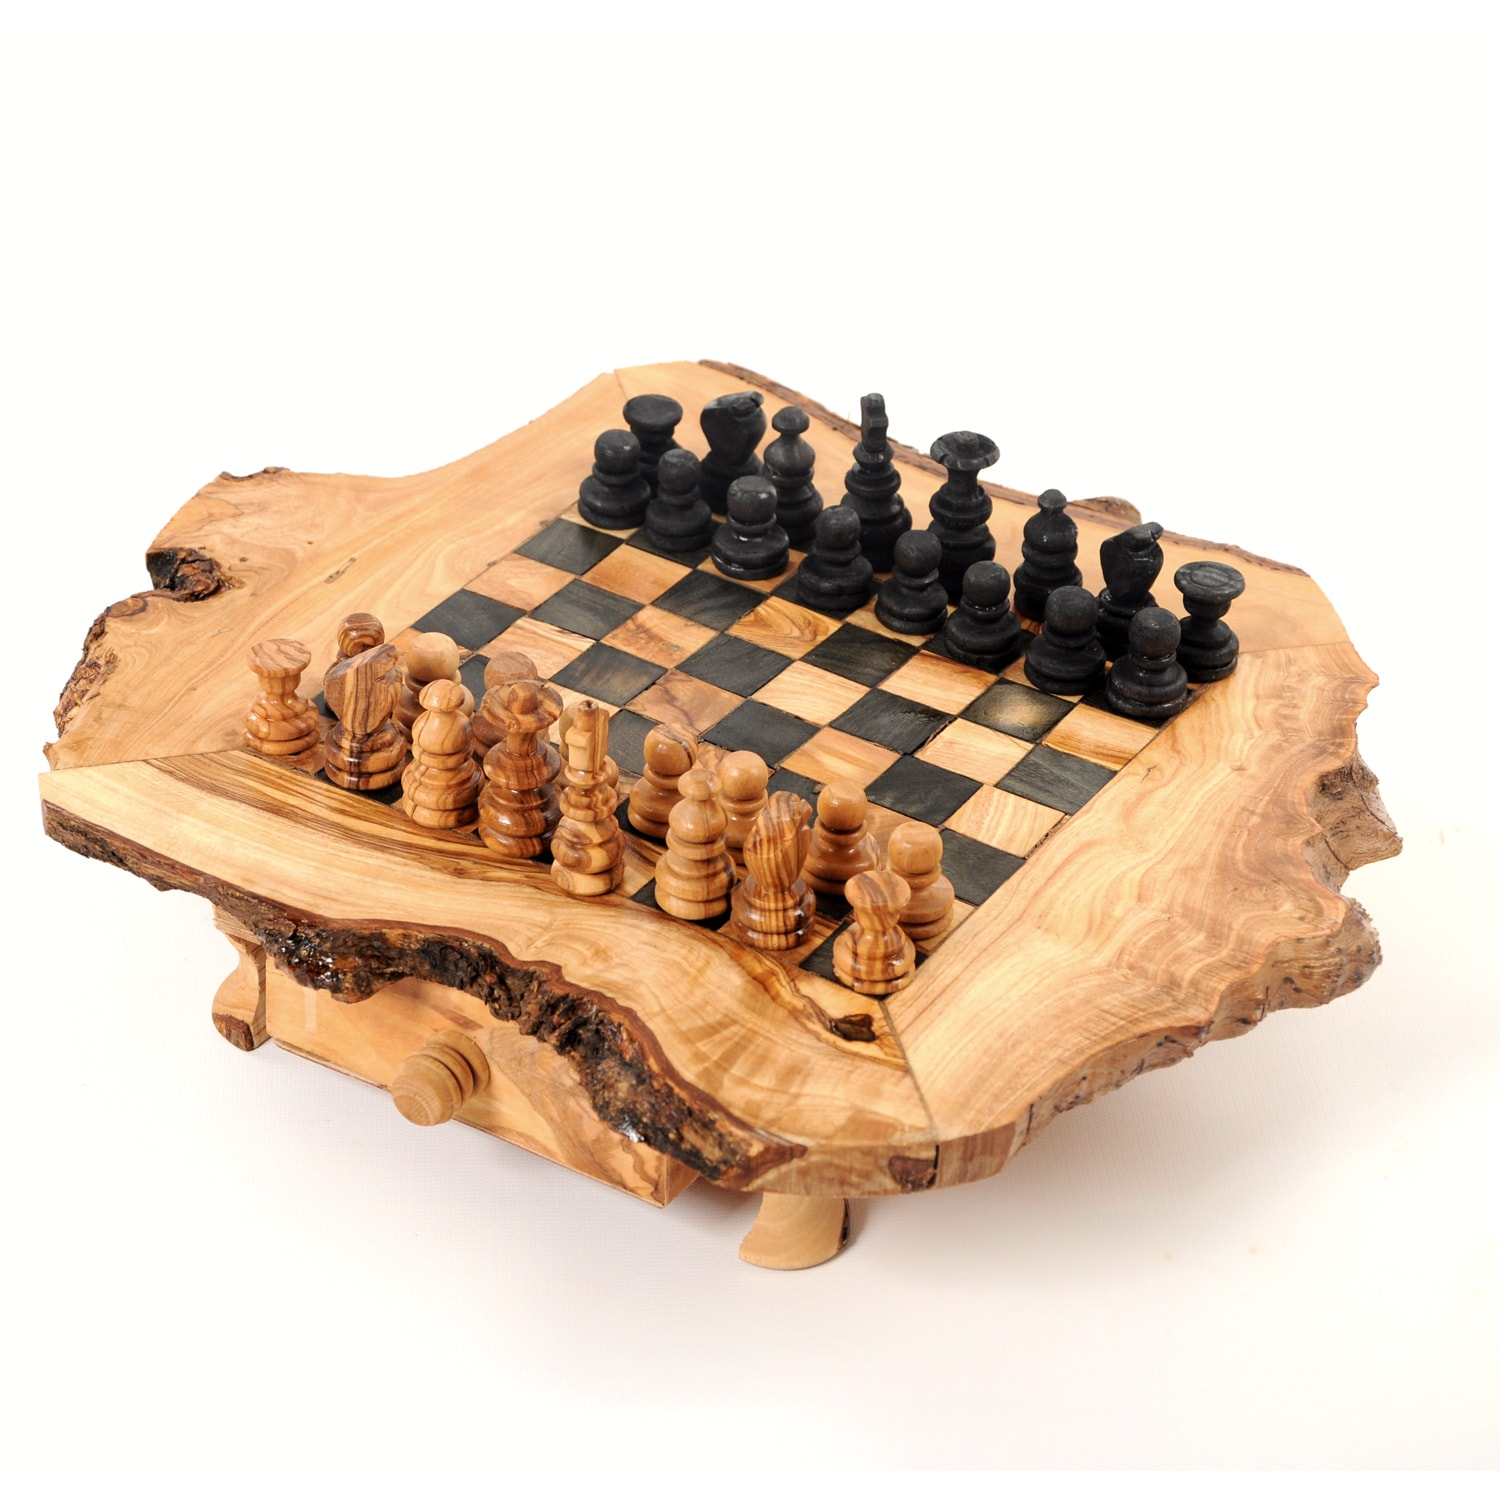 Handmade Large Wood Chess Board